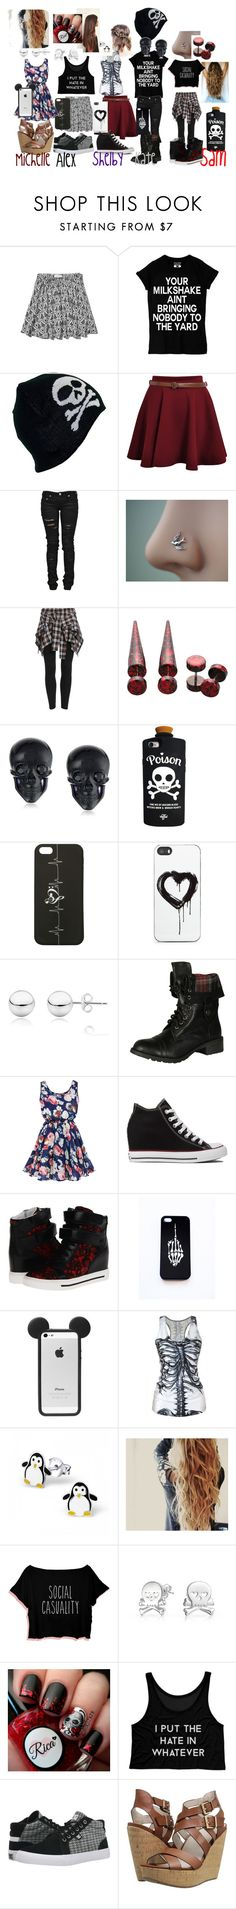 """""""Backstage"""" by sammi-sam-ar on Polyvore featuring Abercrombie & Fitch, Denim of Virtue, Tarina Tarantino, Valfré, Zero Gravity, Mondevio, Soda, Converse, Marc by Marc Jacobs and Bling Jewelry"""